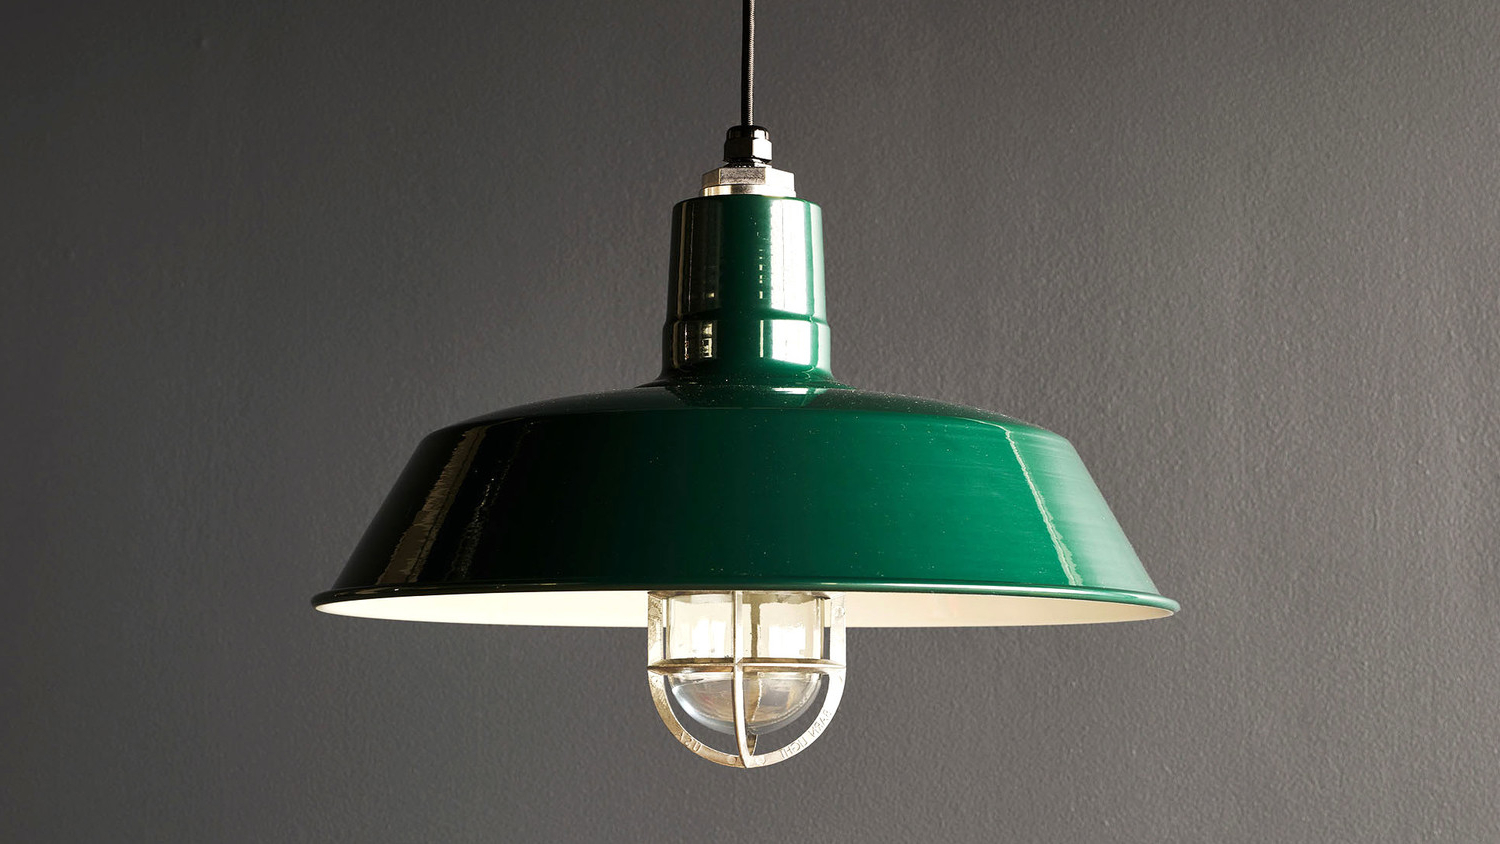 Most Recently Released Granville 2 Light Single Dome Pendants Regarding Don't Miss This Deal: Granville 2 Light Single Dome Pendant (View 15 of 20)